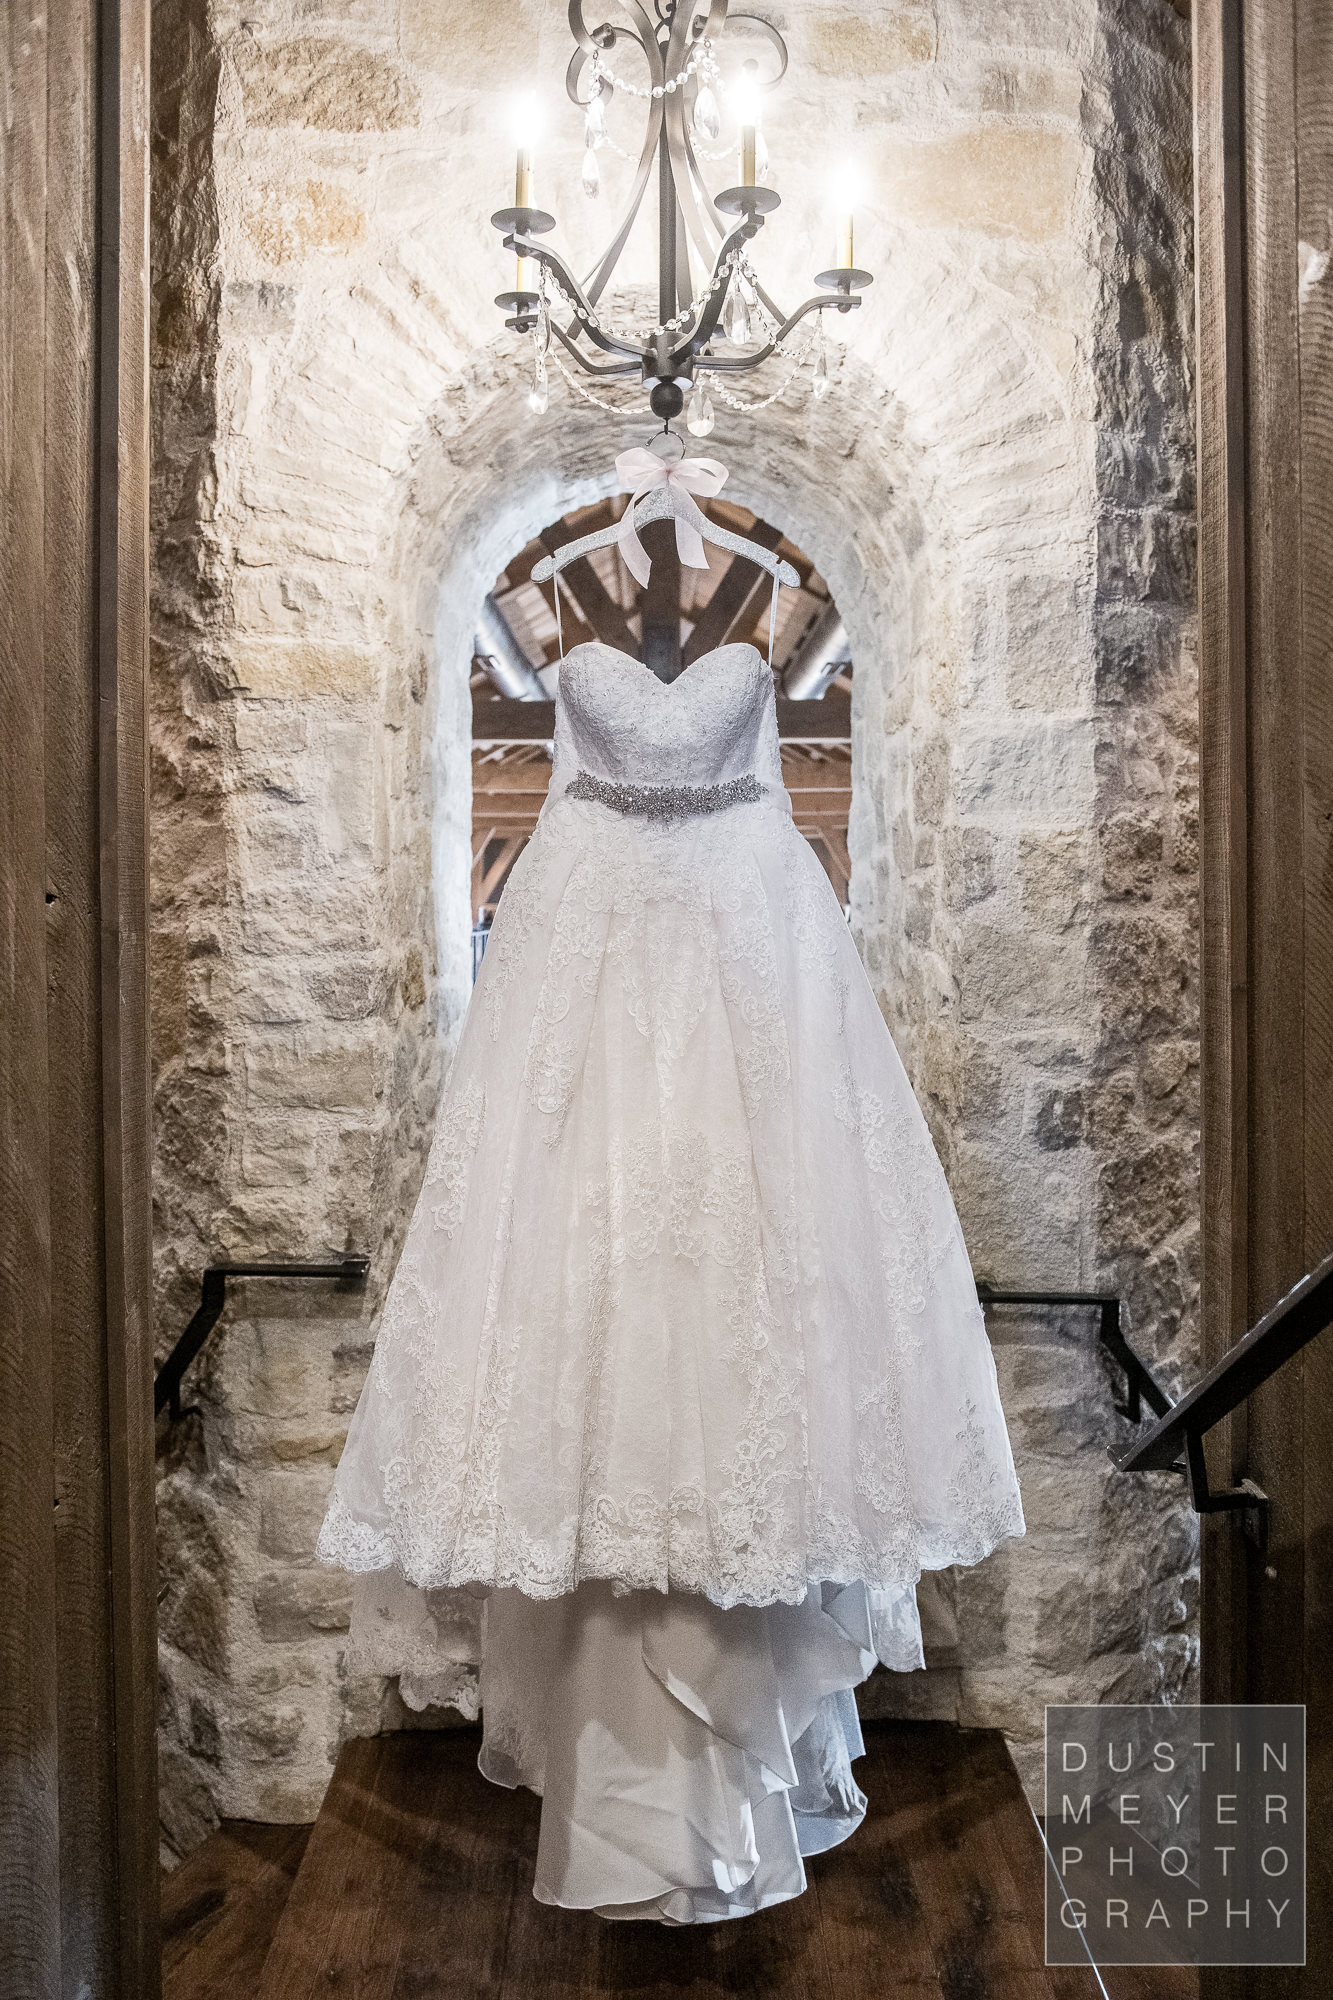 The gorgeous bridal gown hanging on display in a rustic setting